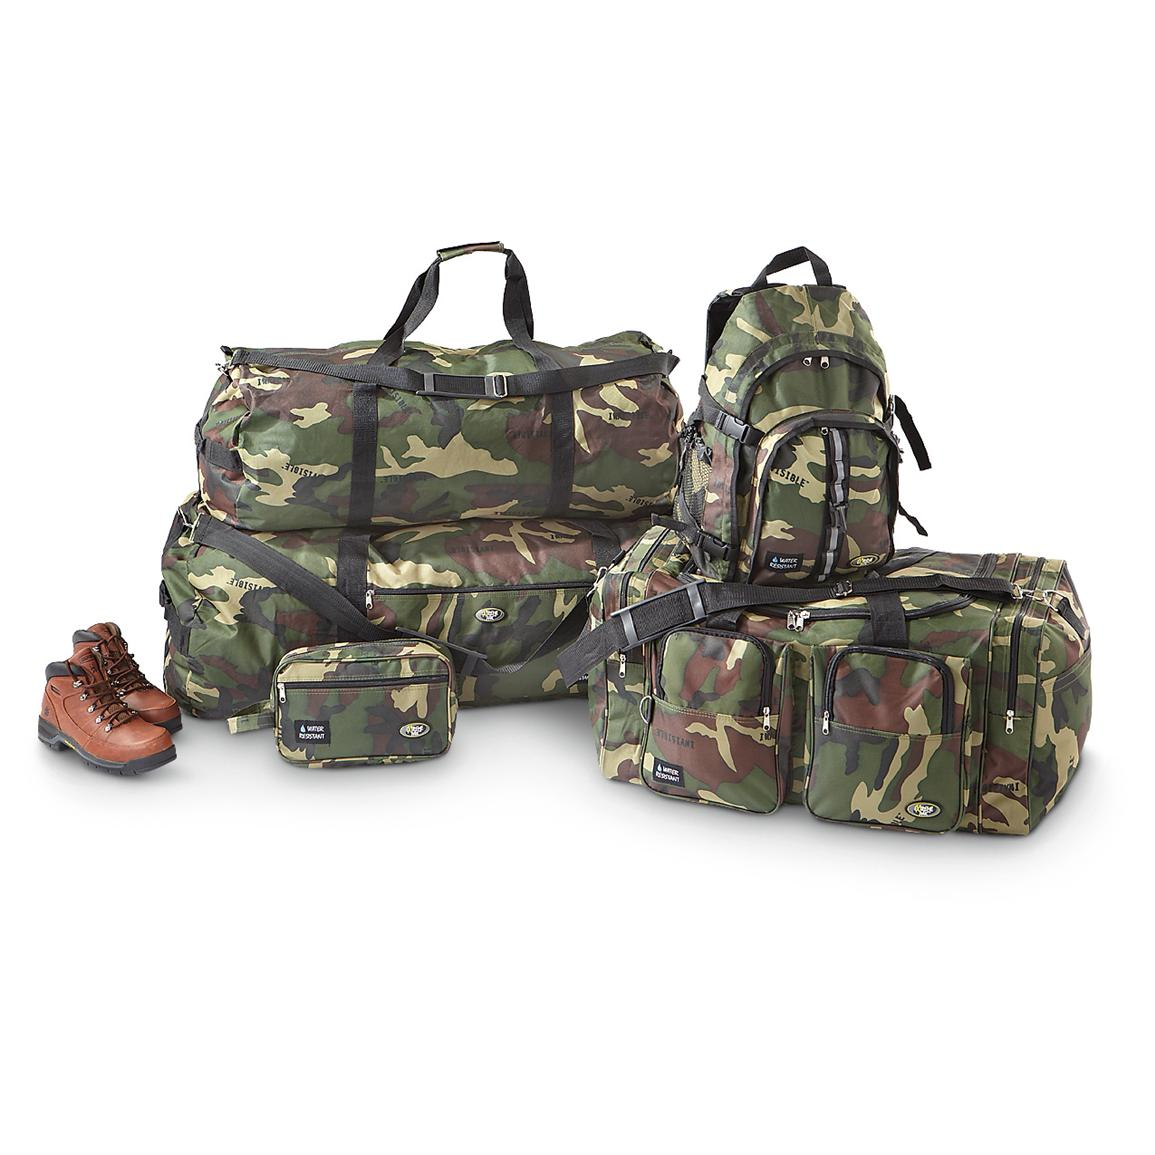 Extreme Pak 5-Pc. Water-repellent Invisible Camo Duffel Bag Set